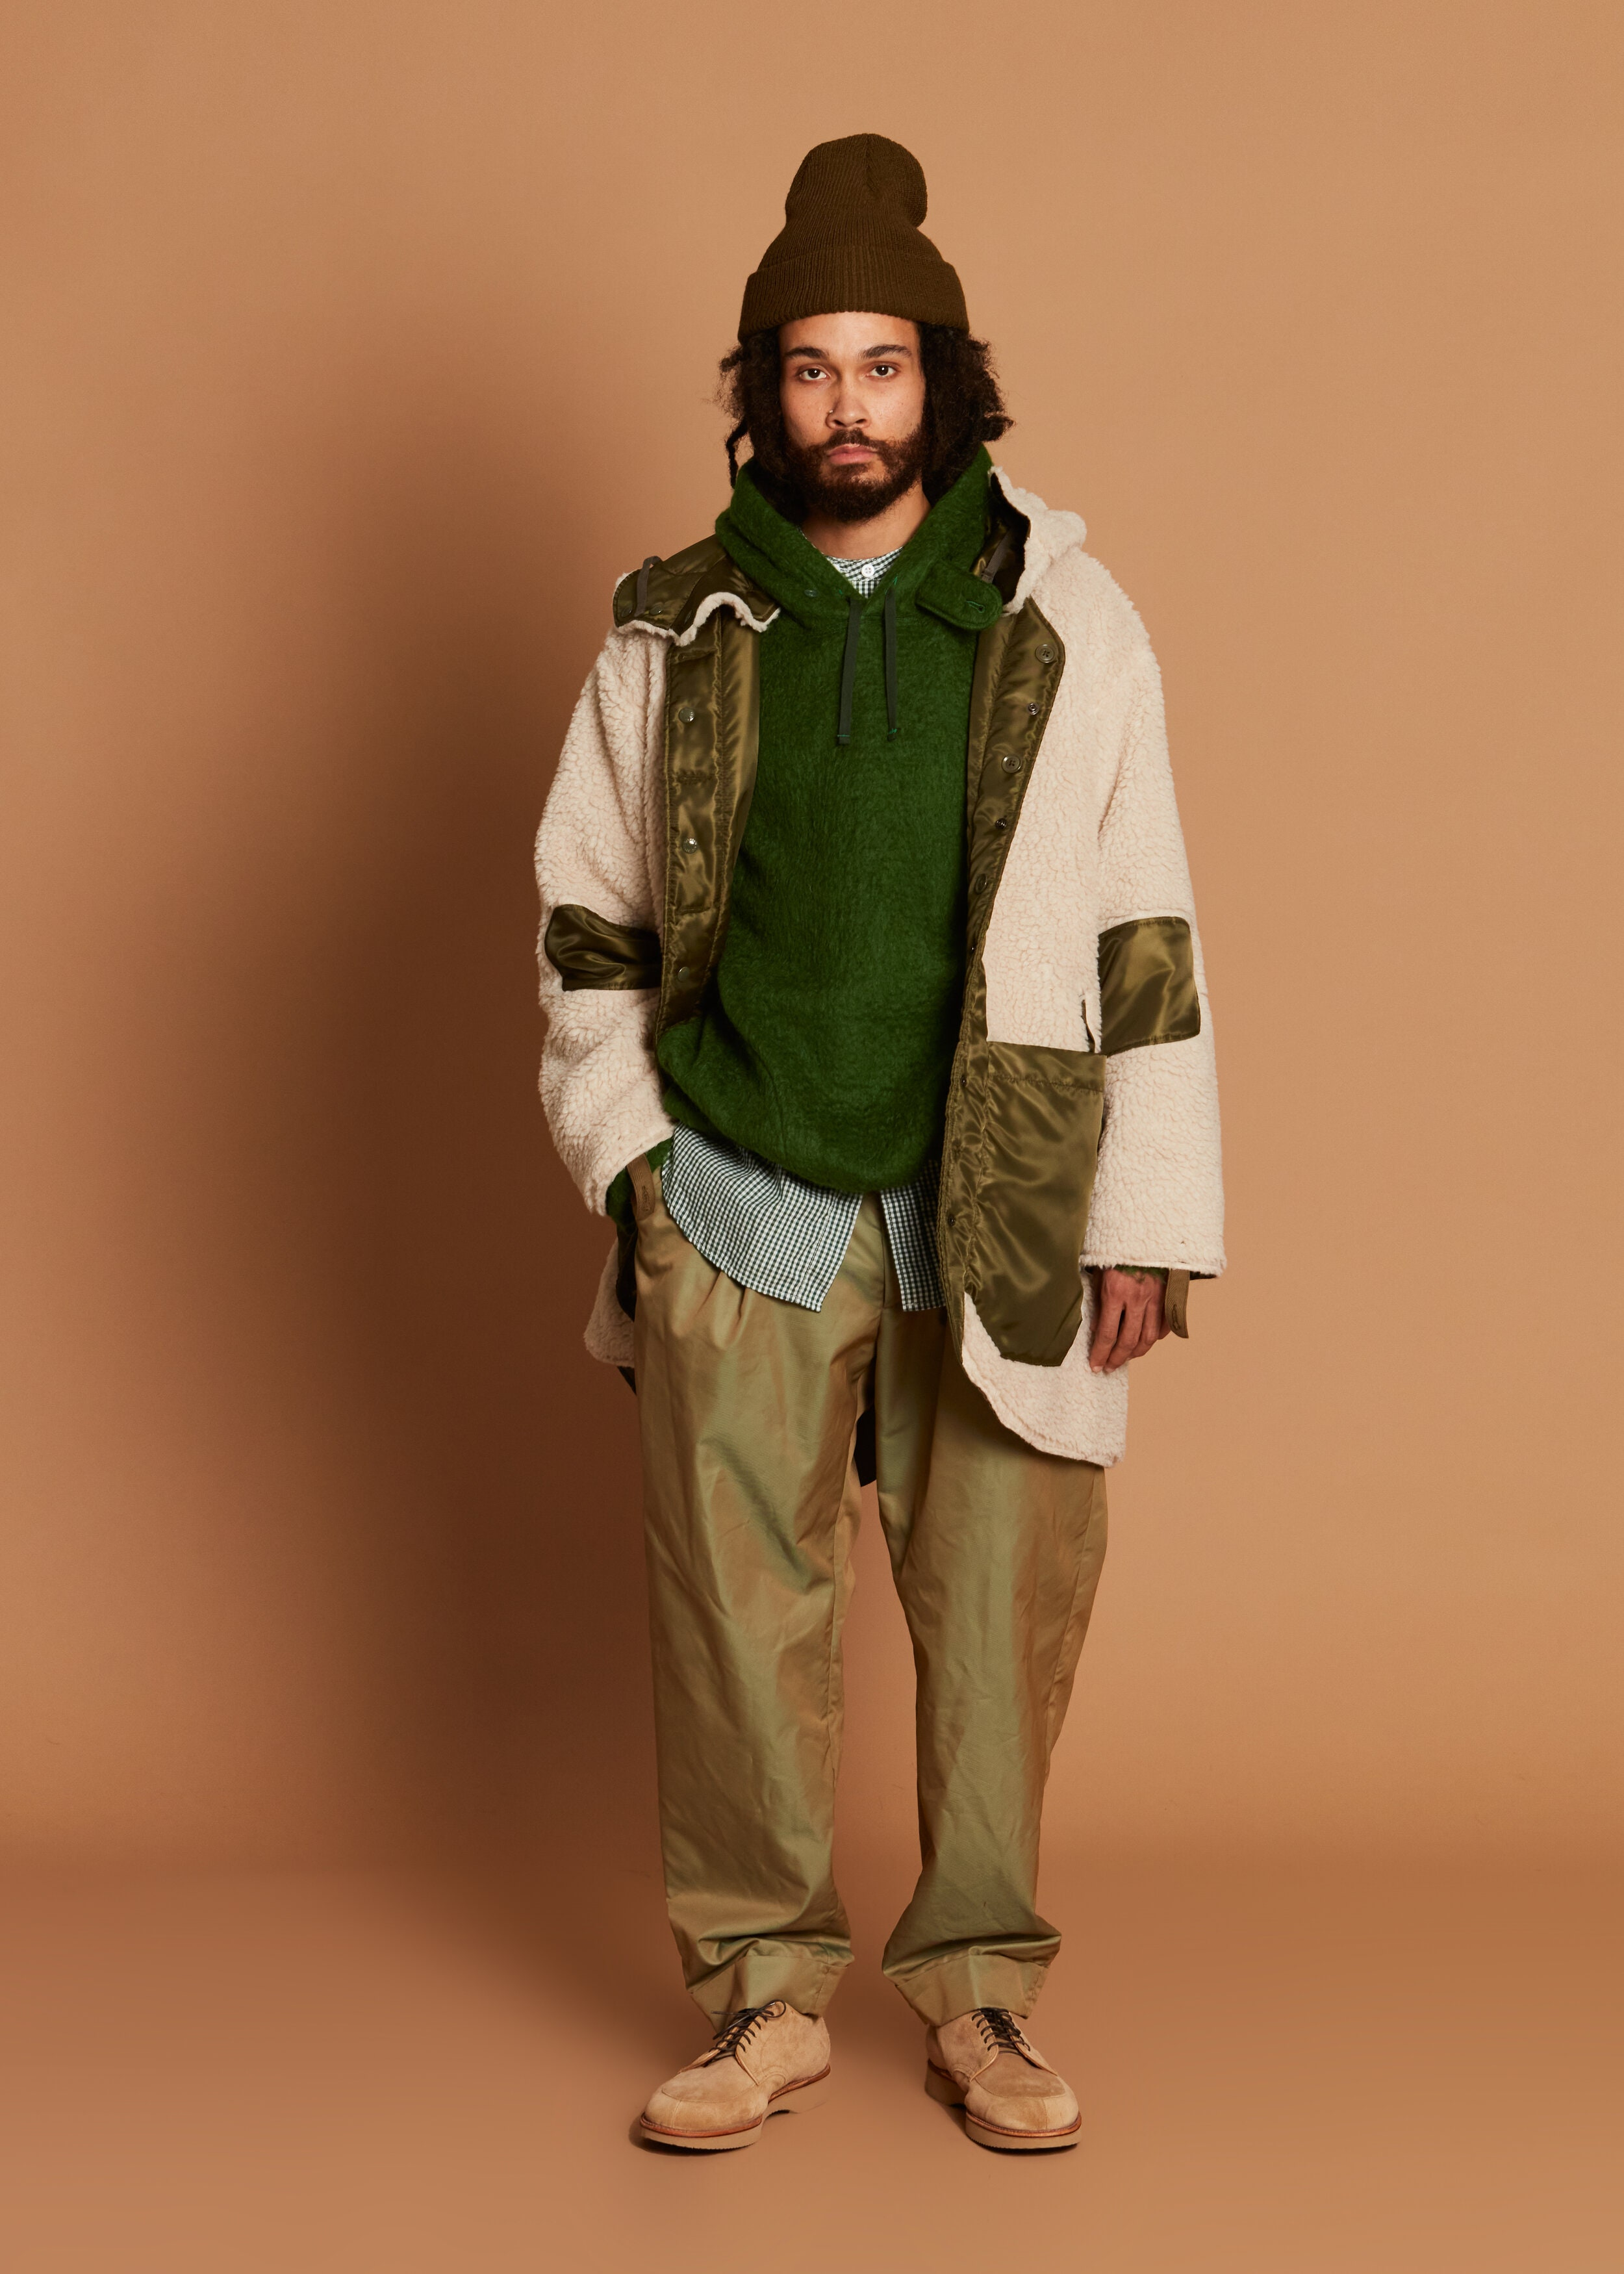 engineered-garments-has-never-looked-so-right